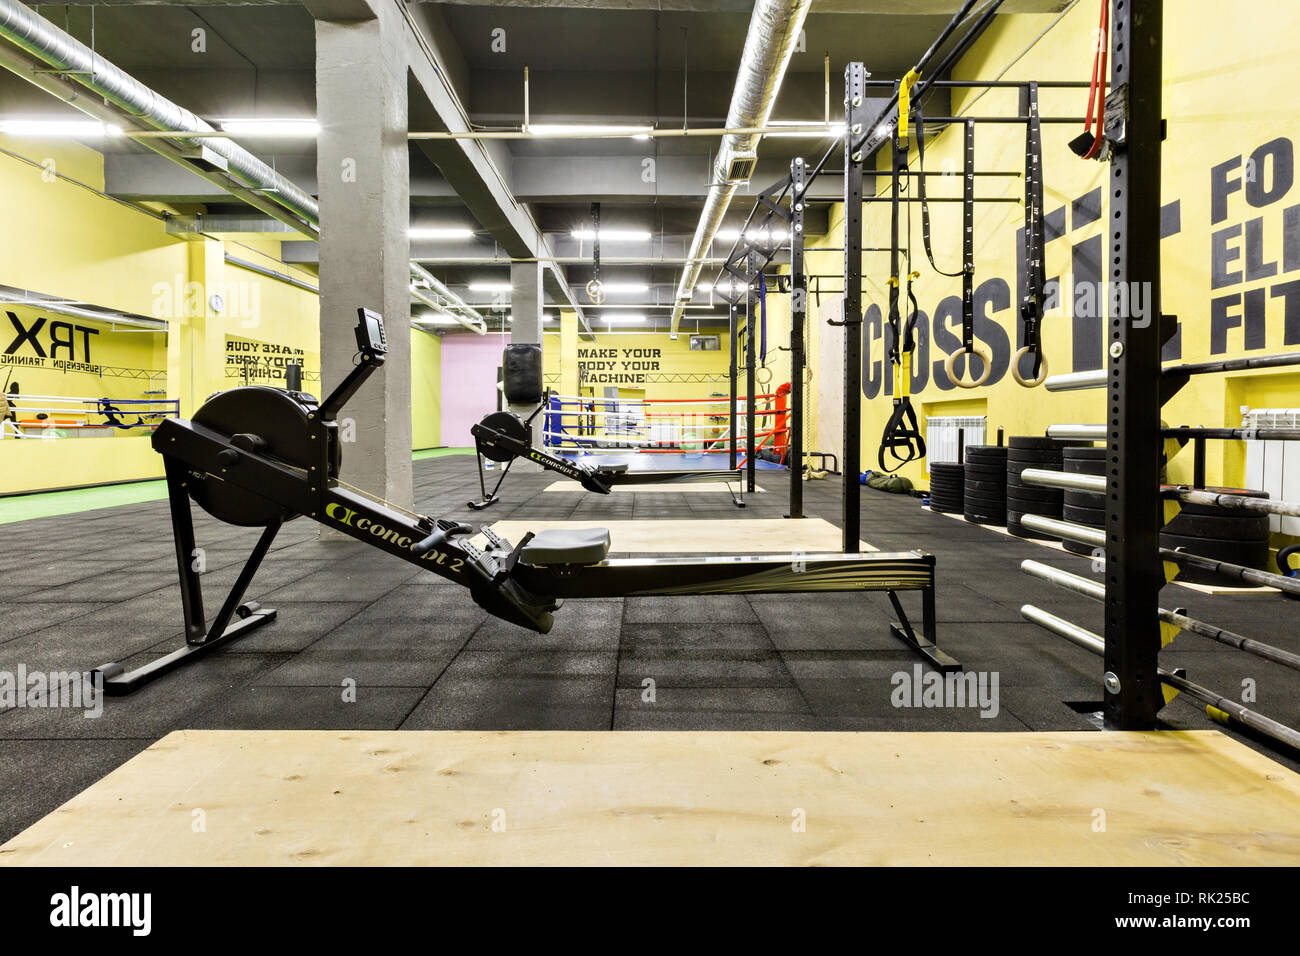 Russia, Nizhny Novgorod - January 30, 2017: Interior of the gym for fitness workout. Cross fit training. Barbells kettlebells bars and weightlifting - Stock Image